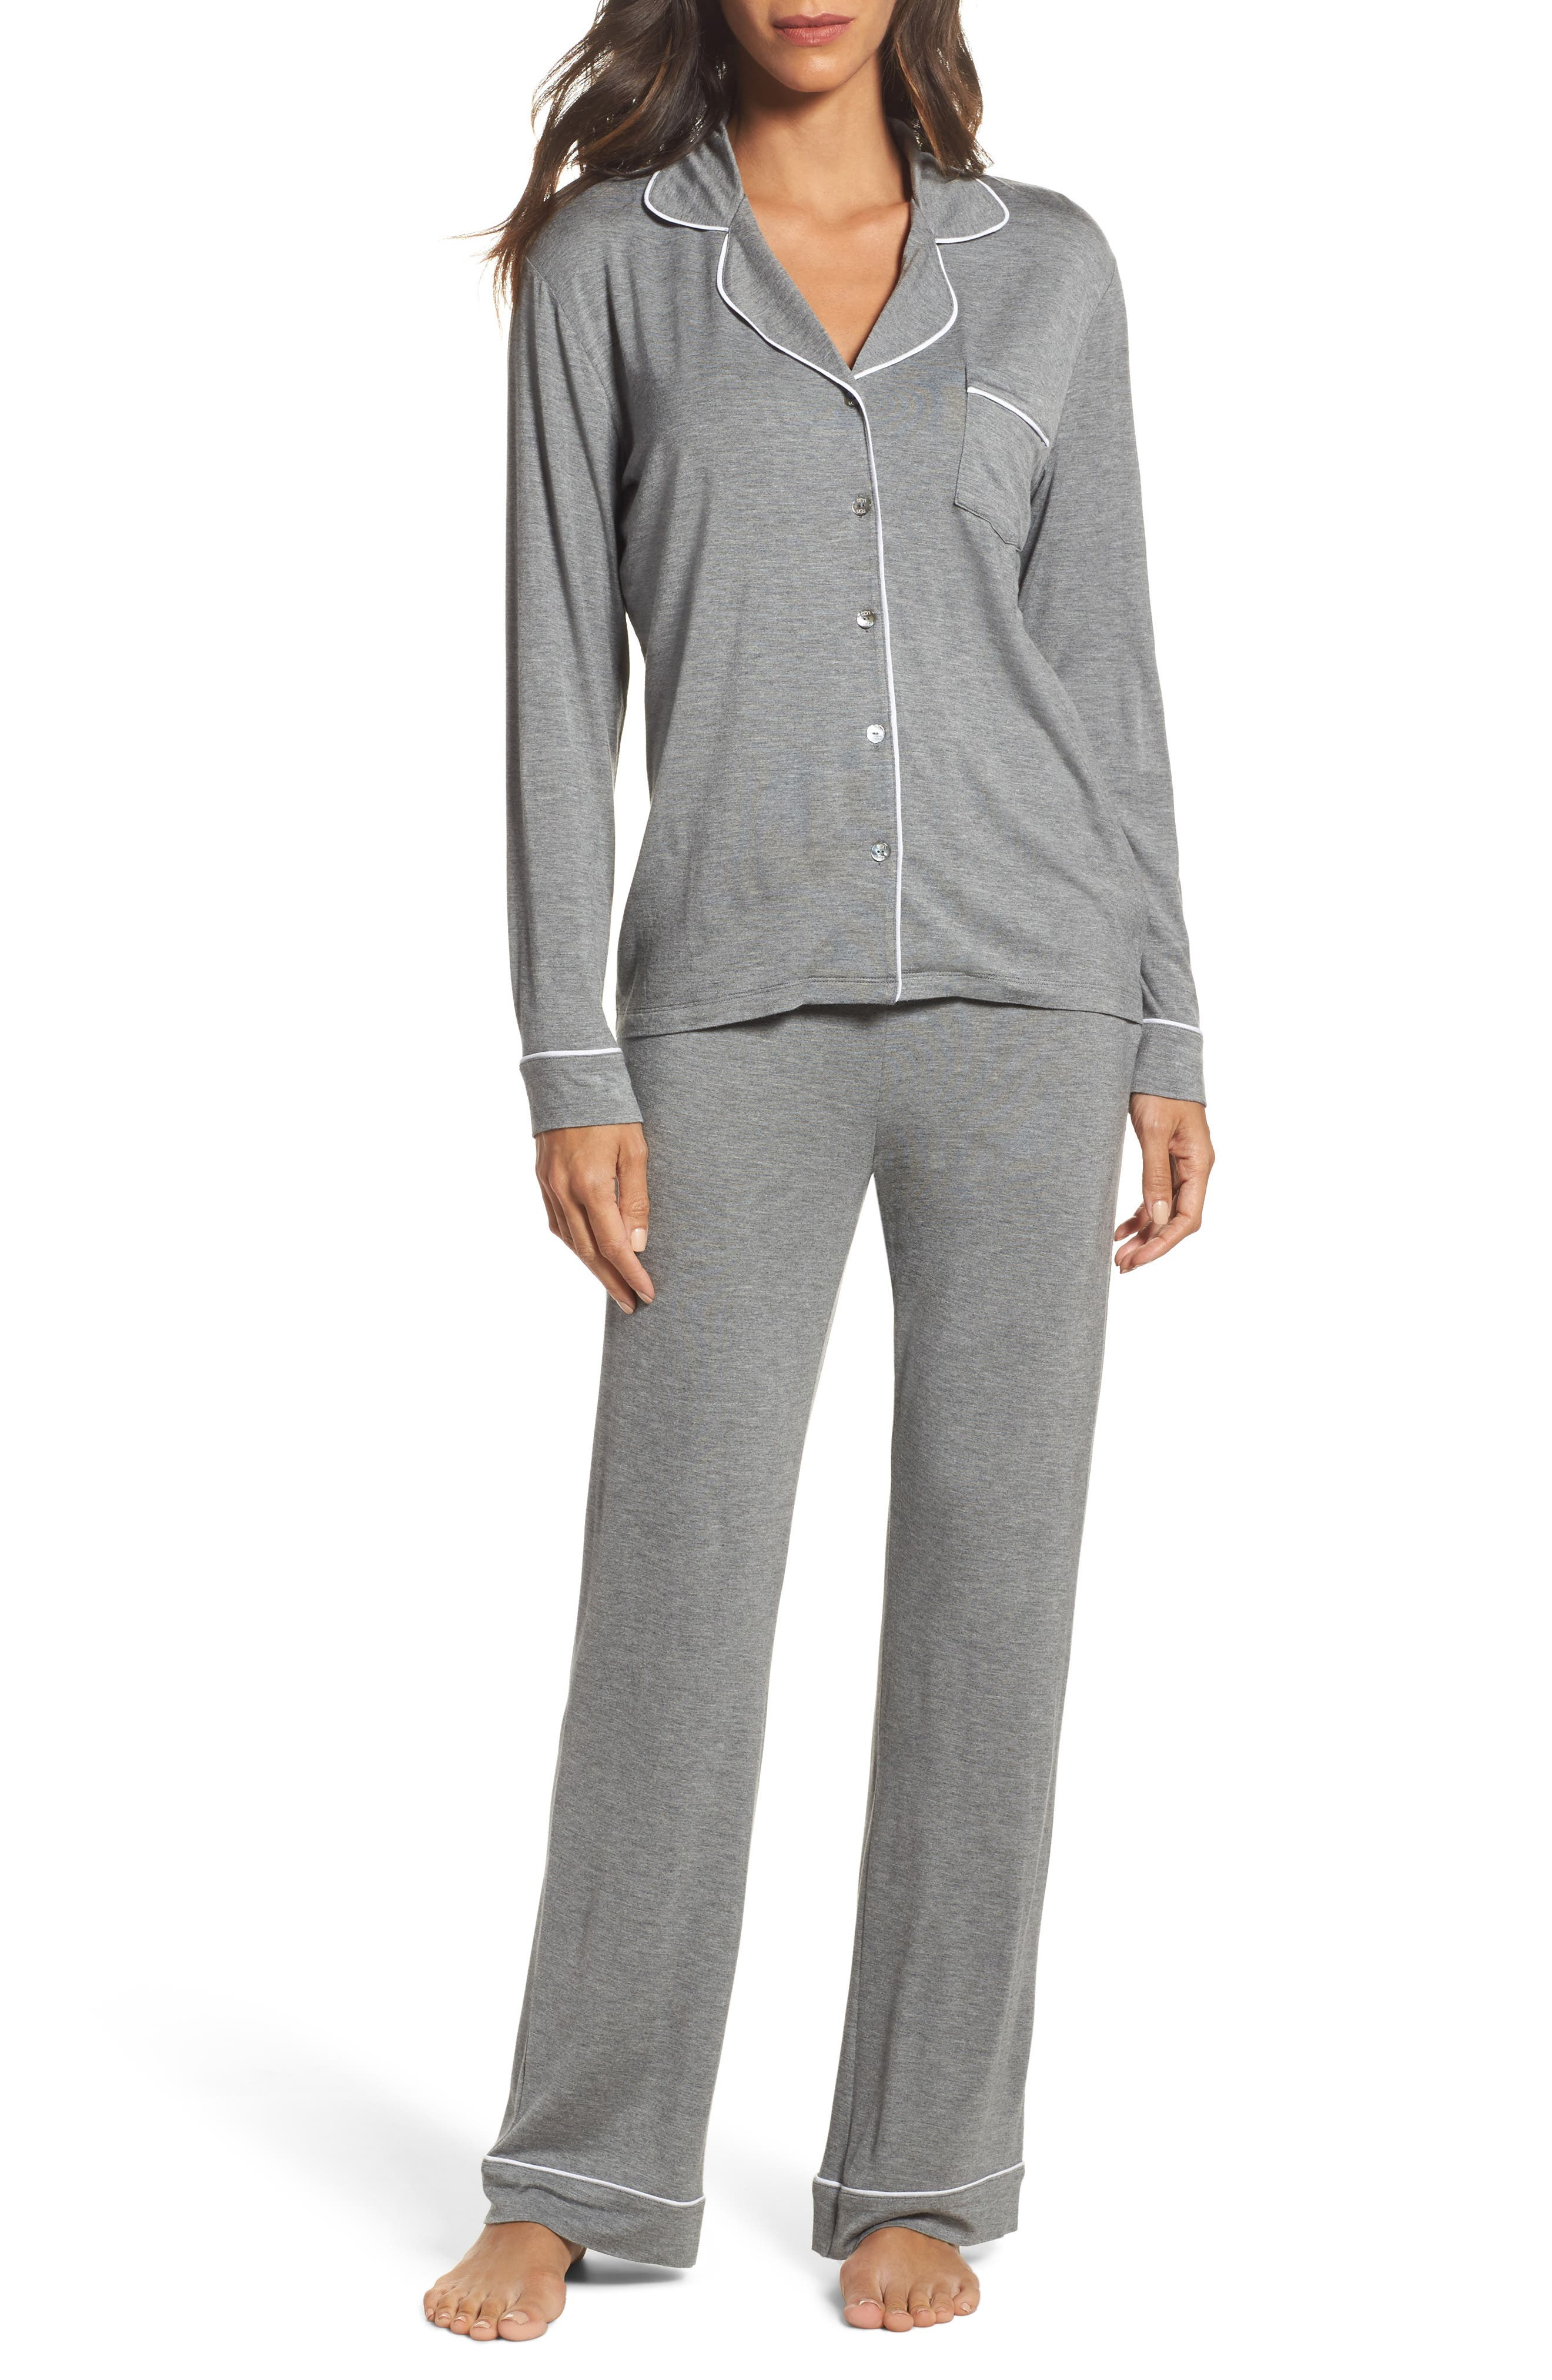 Lenon Jersey Pajamas,                             Main thumbnail 1, color,                             GREY HEATHER